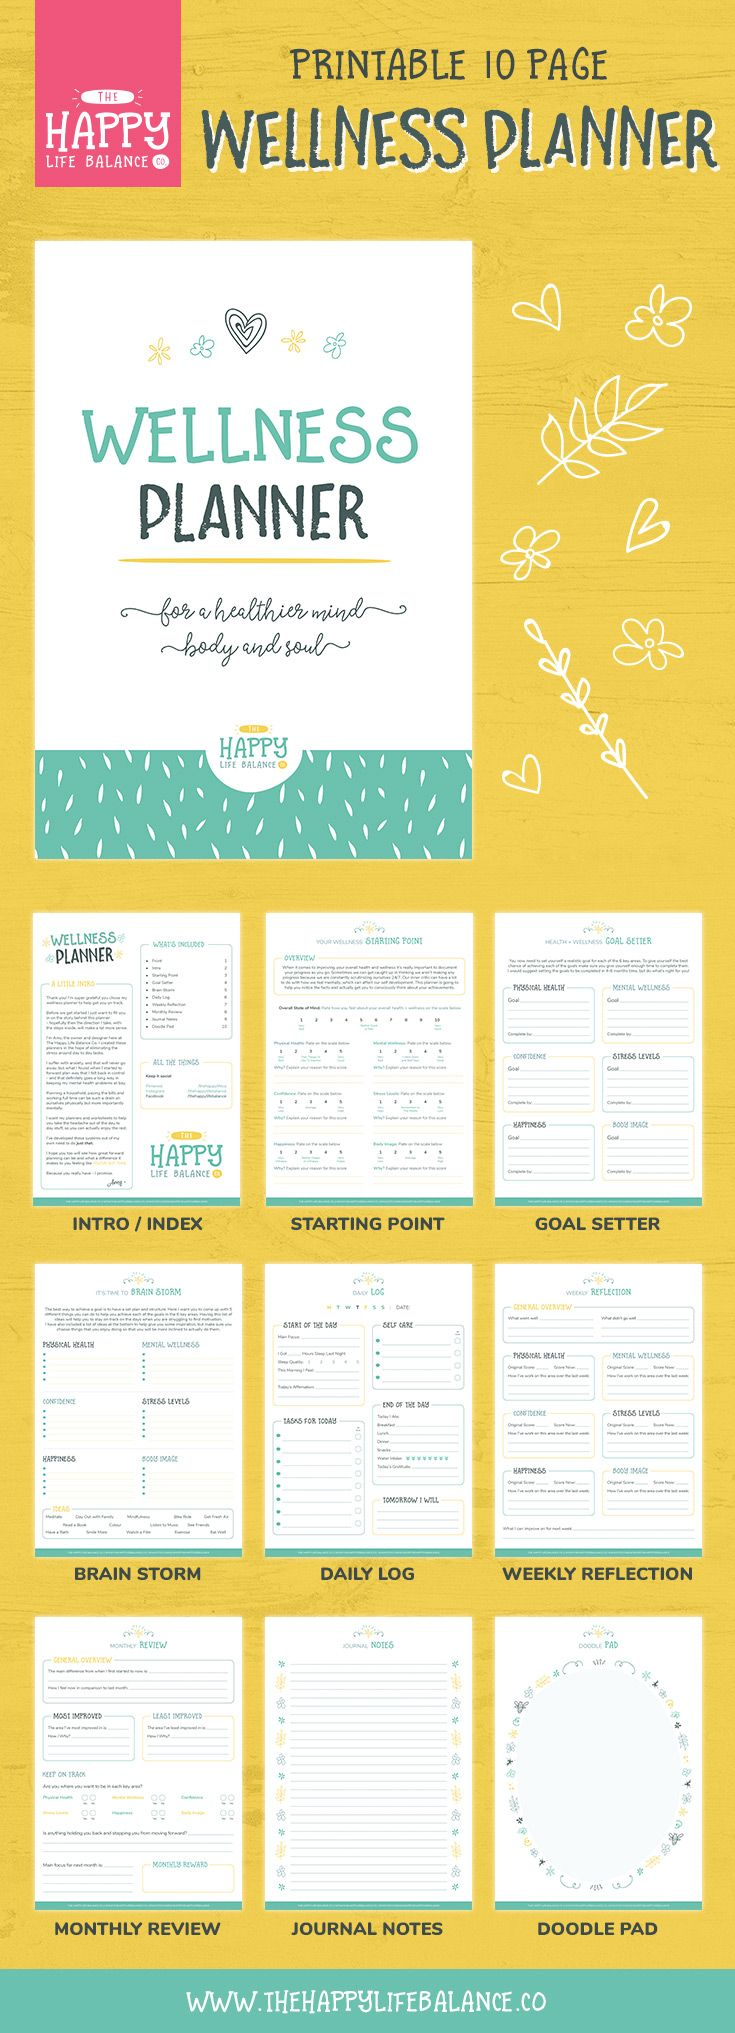 Improve your mind, body and soul with this 10-page wellness planner. Your mental health and physical health are both as important as each other so start making them a priority with this printable planner. Great for helping you achieve your health goals and building your confidence.